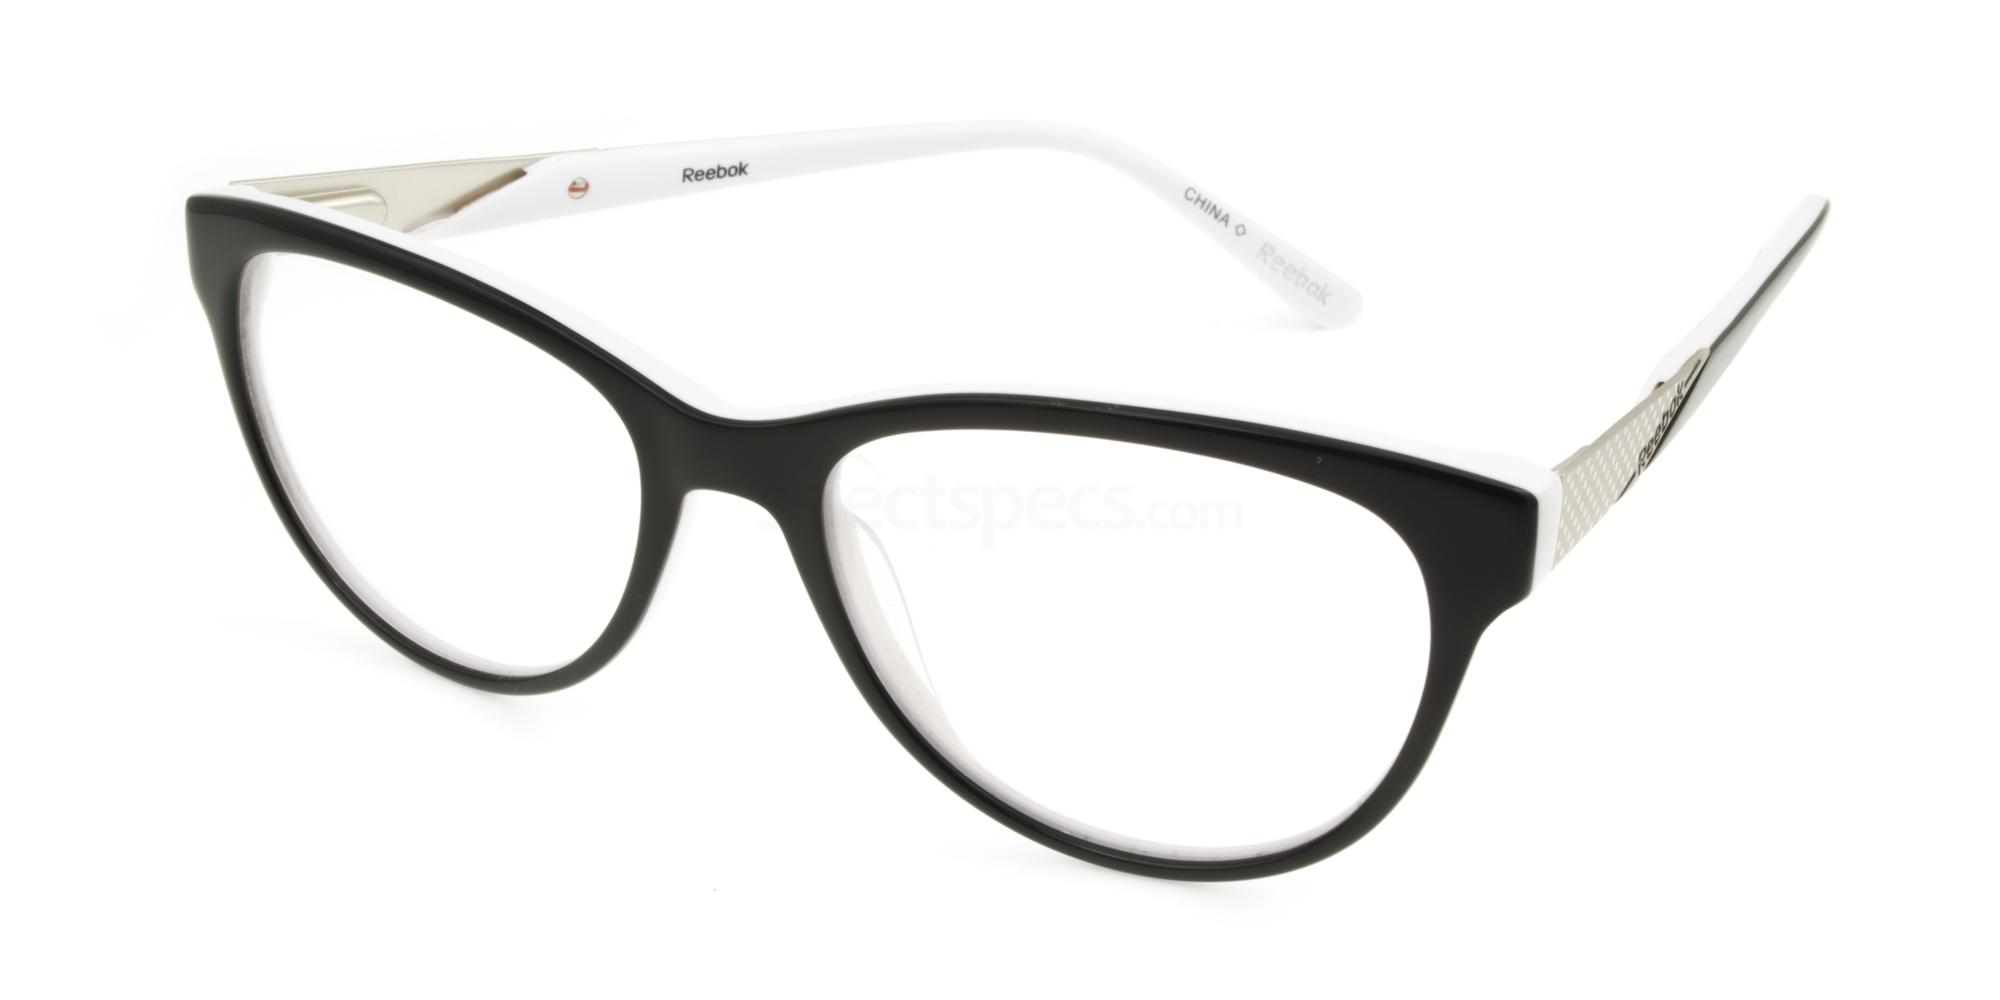 BLK R6014 Glasses, Reebok